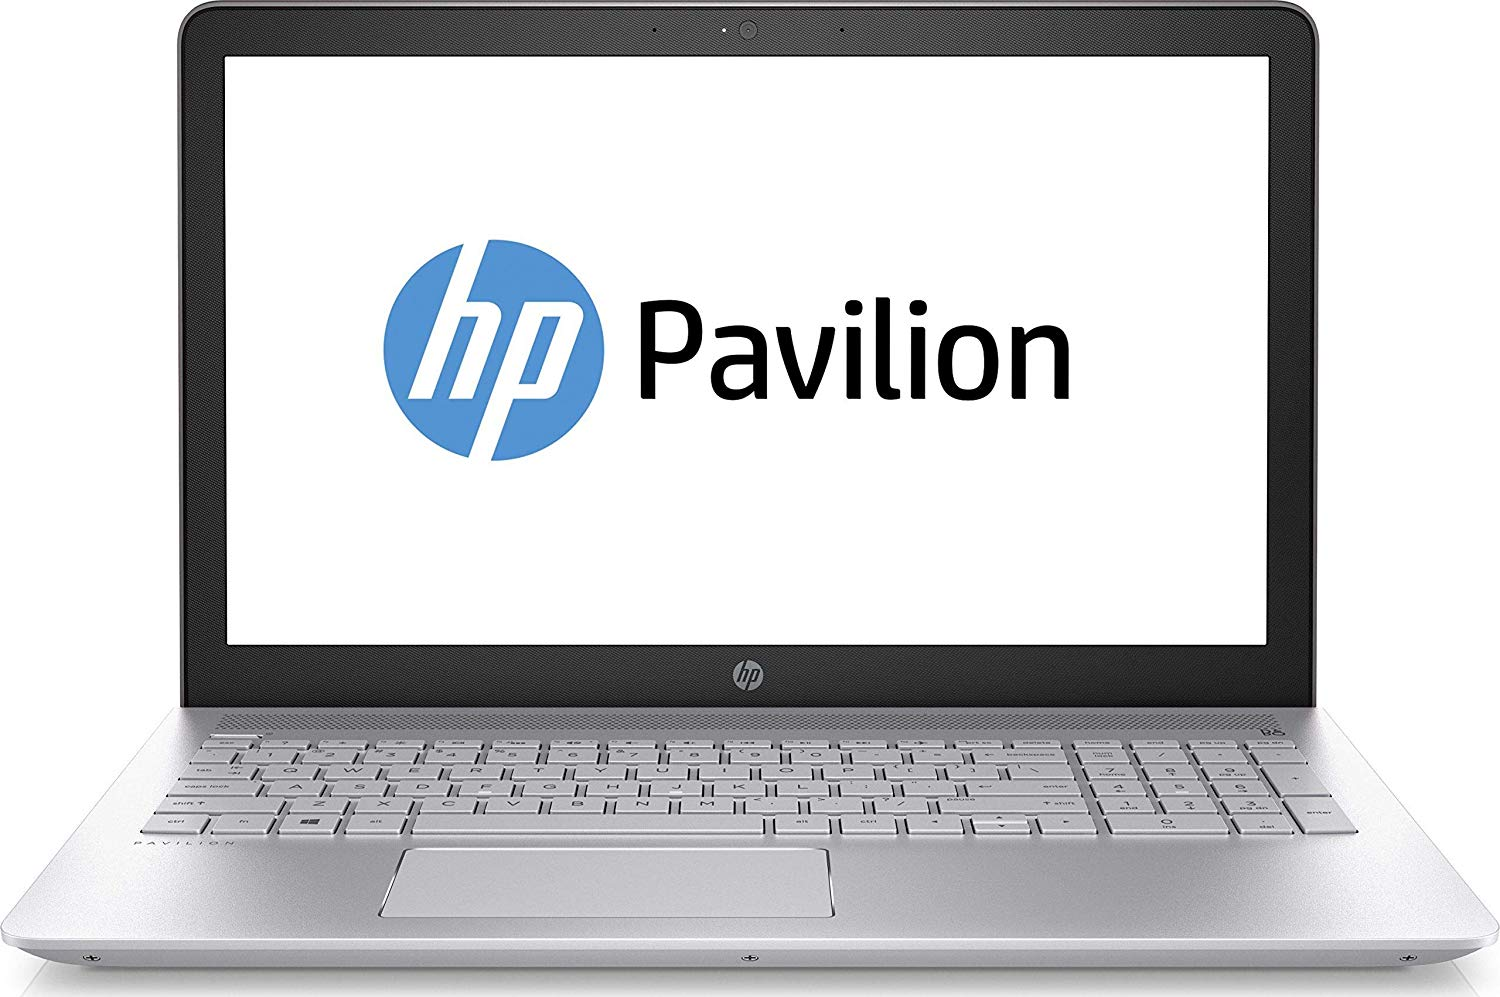 HP Pavilion BIOS Key